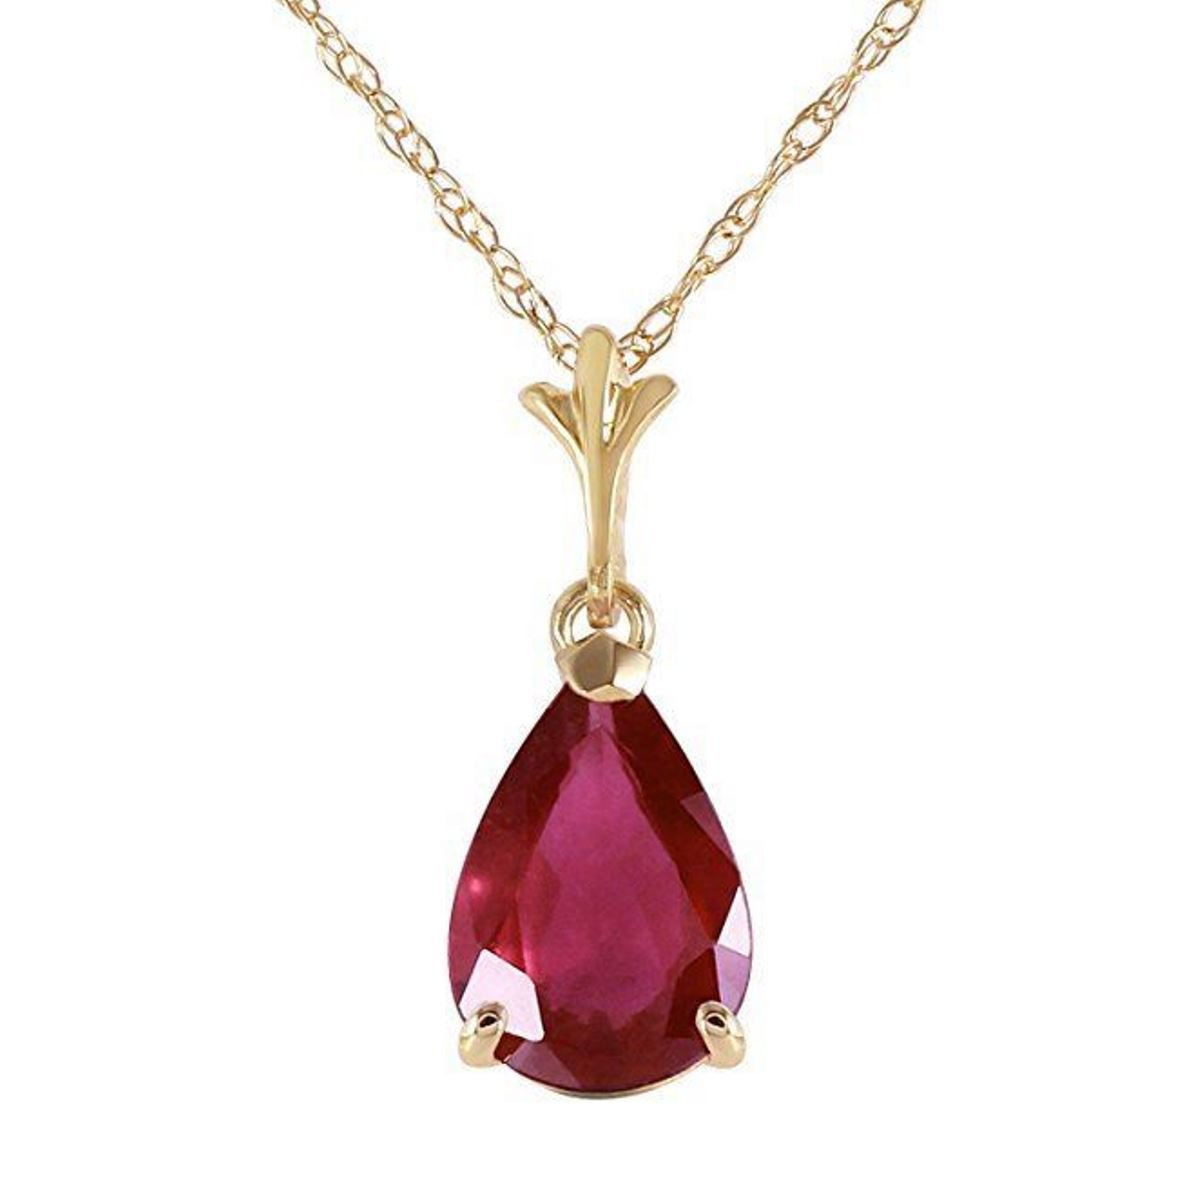 1.75ctw 14K Solid Yellow Gold July Birthstone Pear Shape Ruby Pendant Necklace 1544-Y